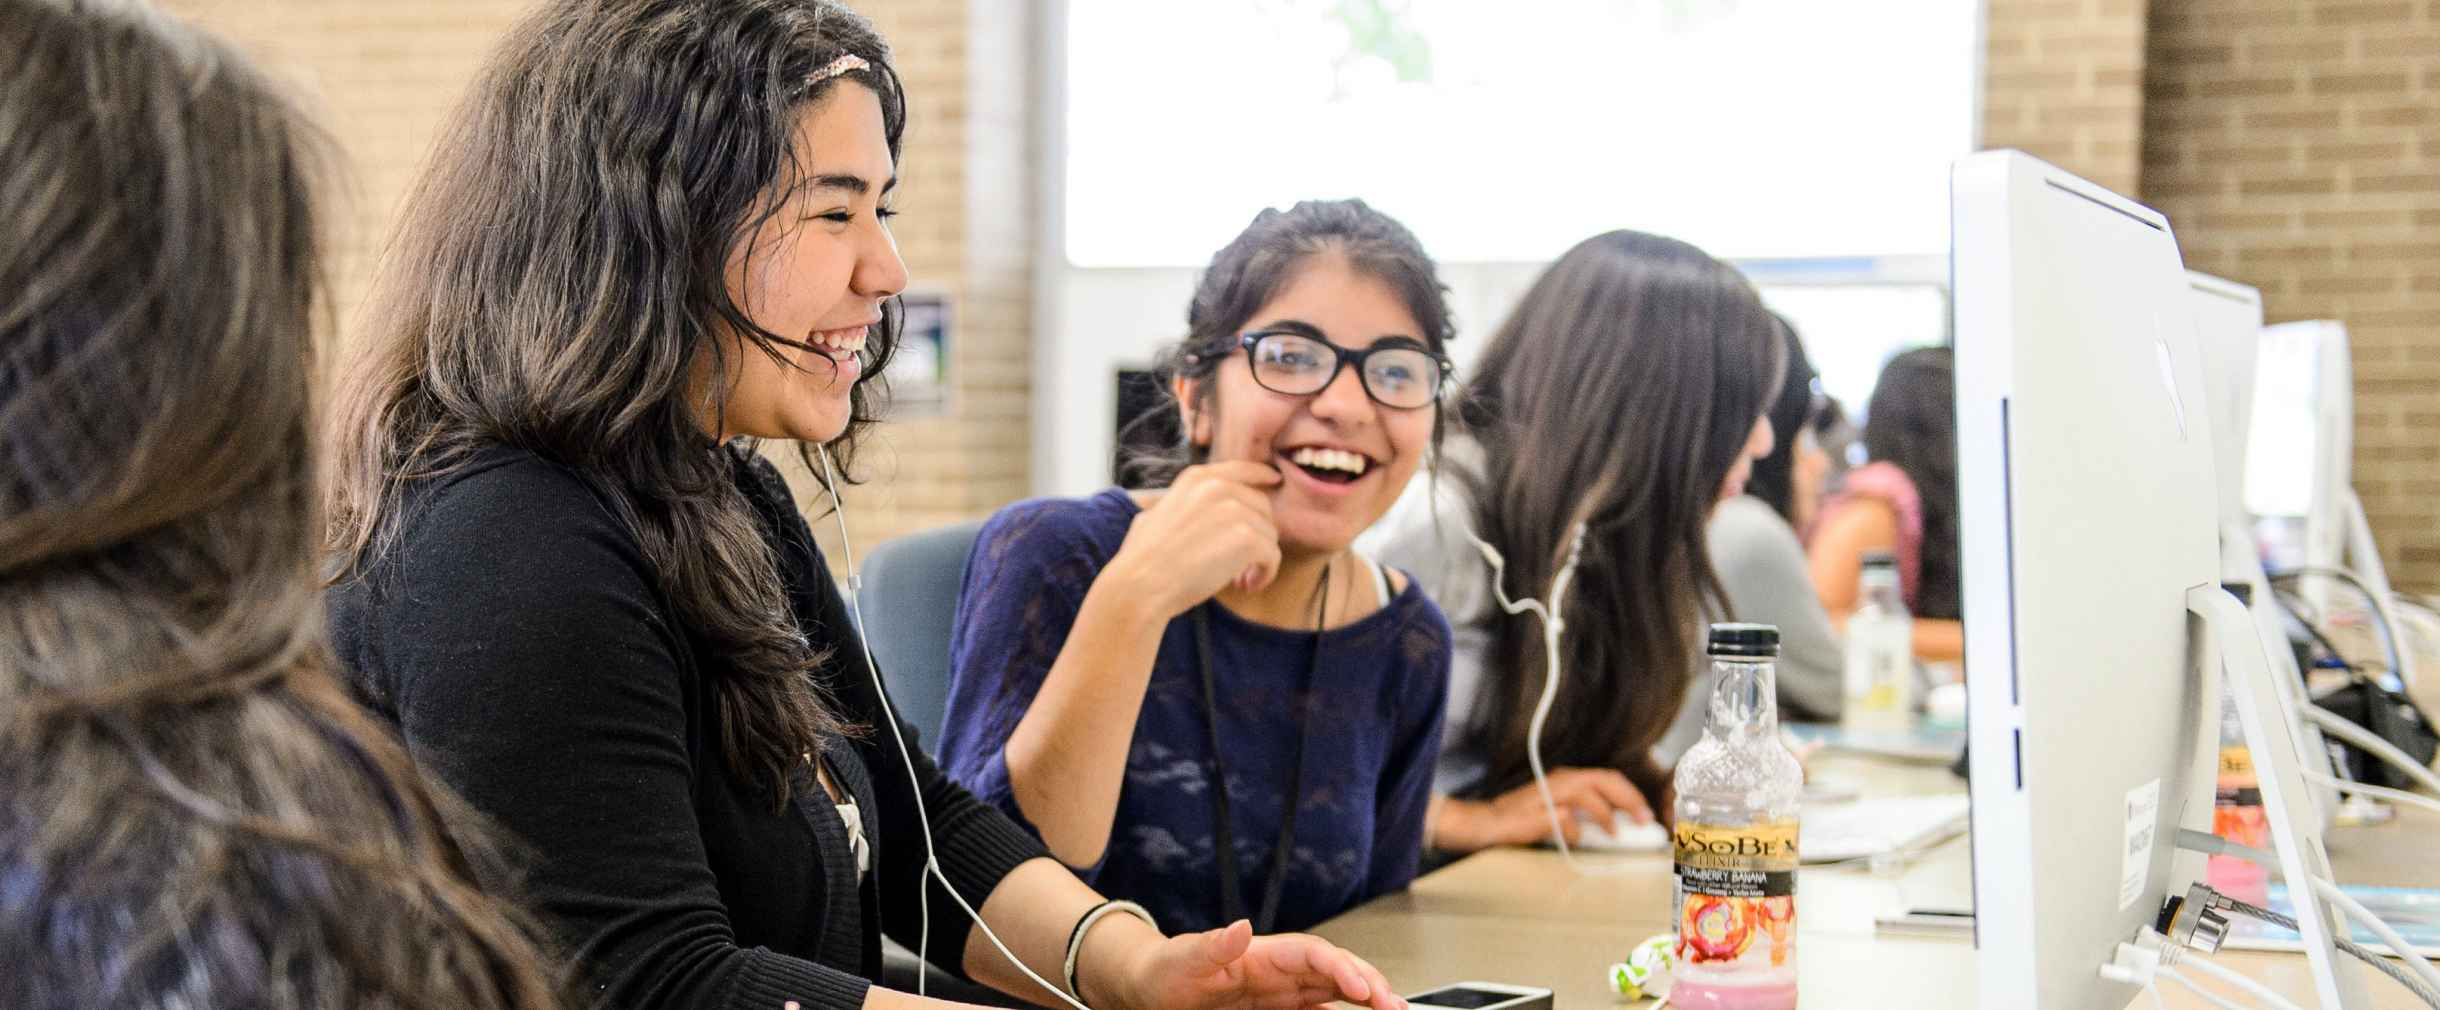 Girls laughing in front of computer